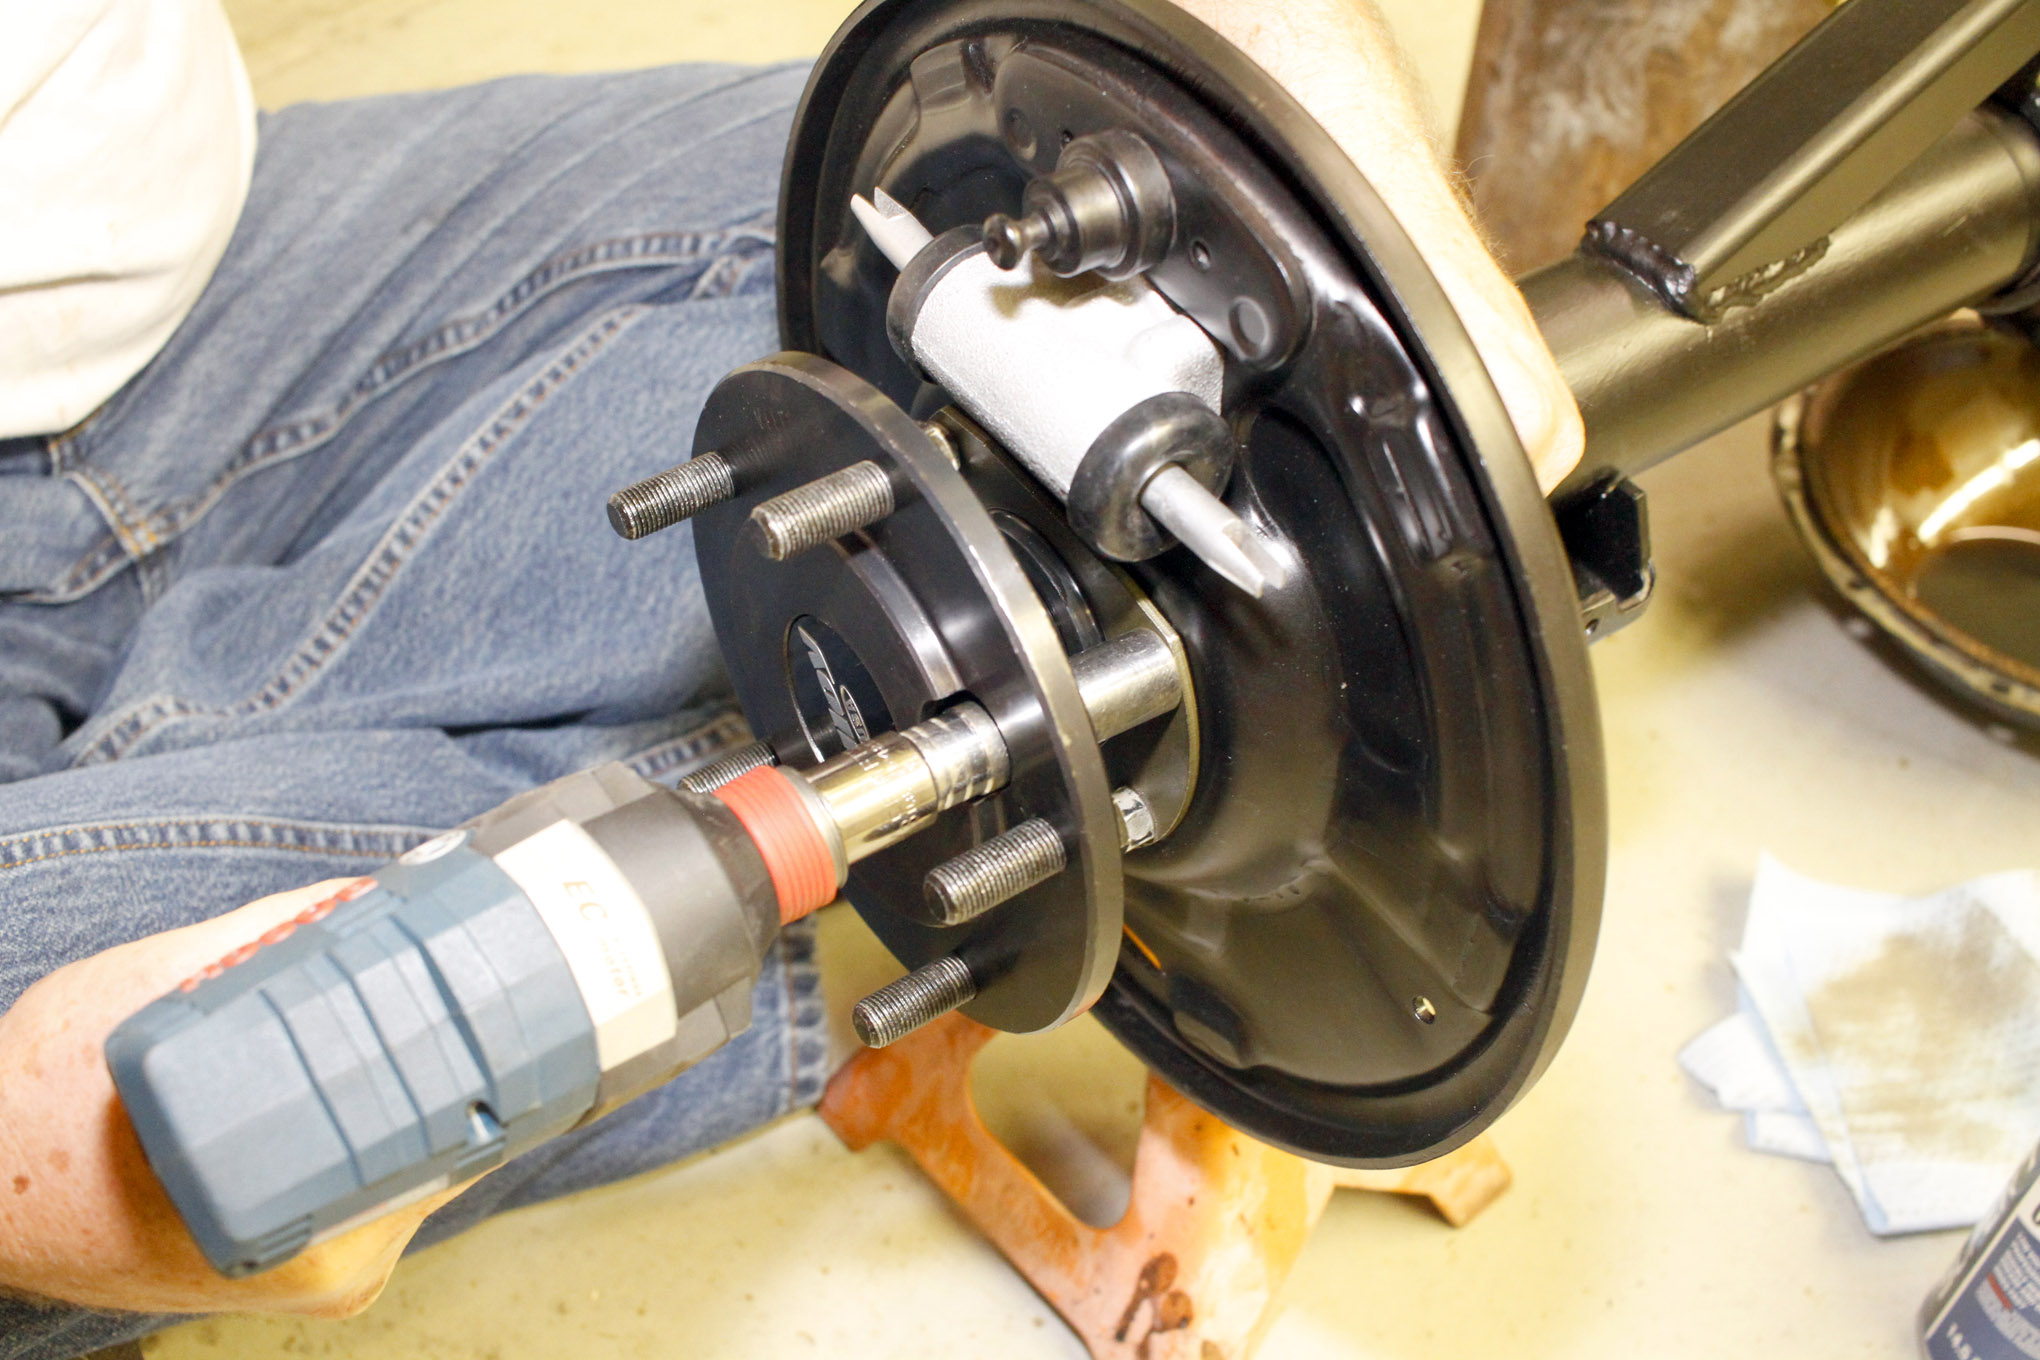 Each axle assembly was slipped into the axlehousing and then secured using four bolts per side. Tightening these bolts preloads the wheel bearing so that the outer race does not spin in the axletube bore. The Alloy USA wheel flanges have a hole in them to allow access to the bolt hardware.